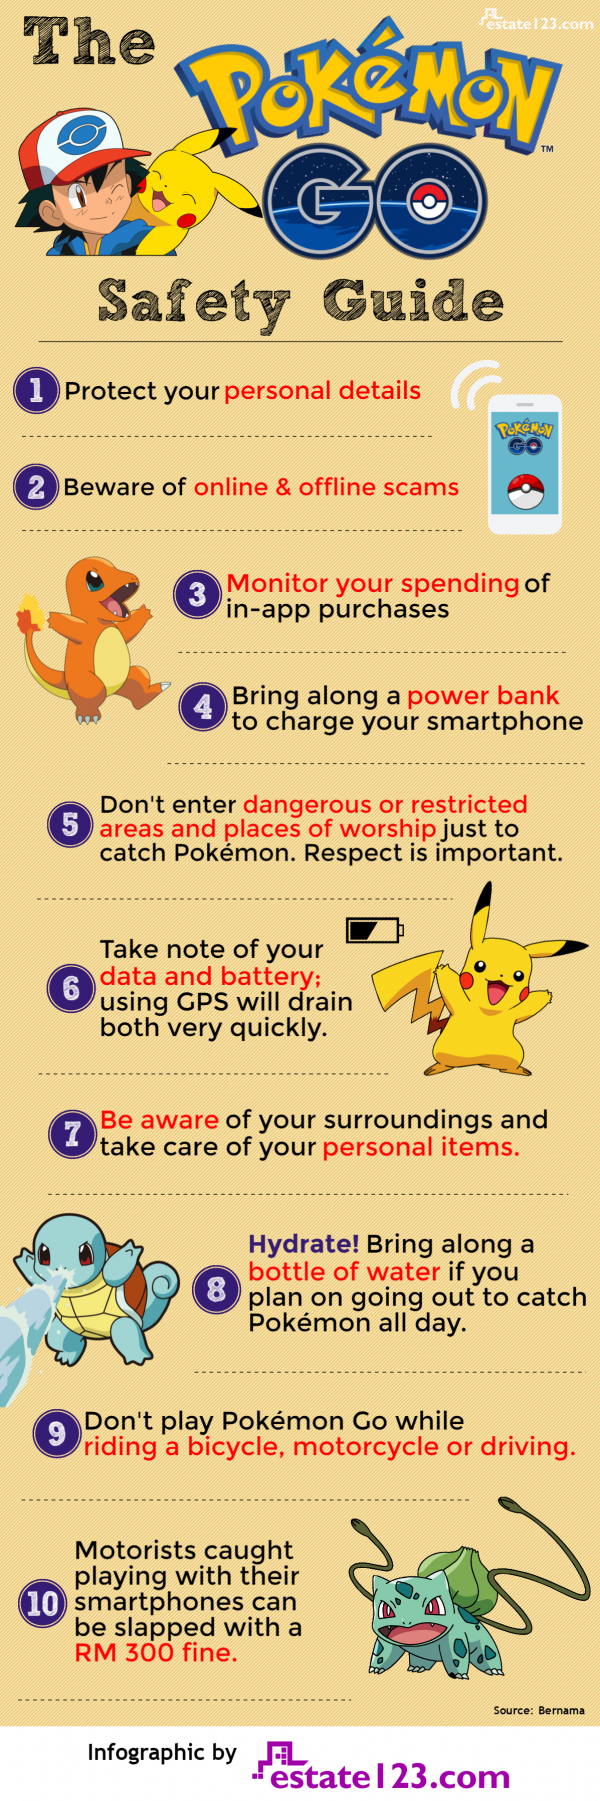 The Pokemon Go Safety Guide